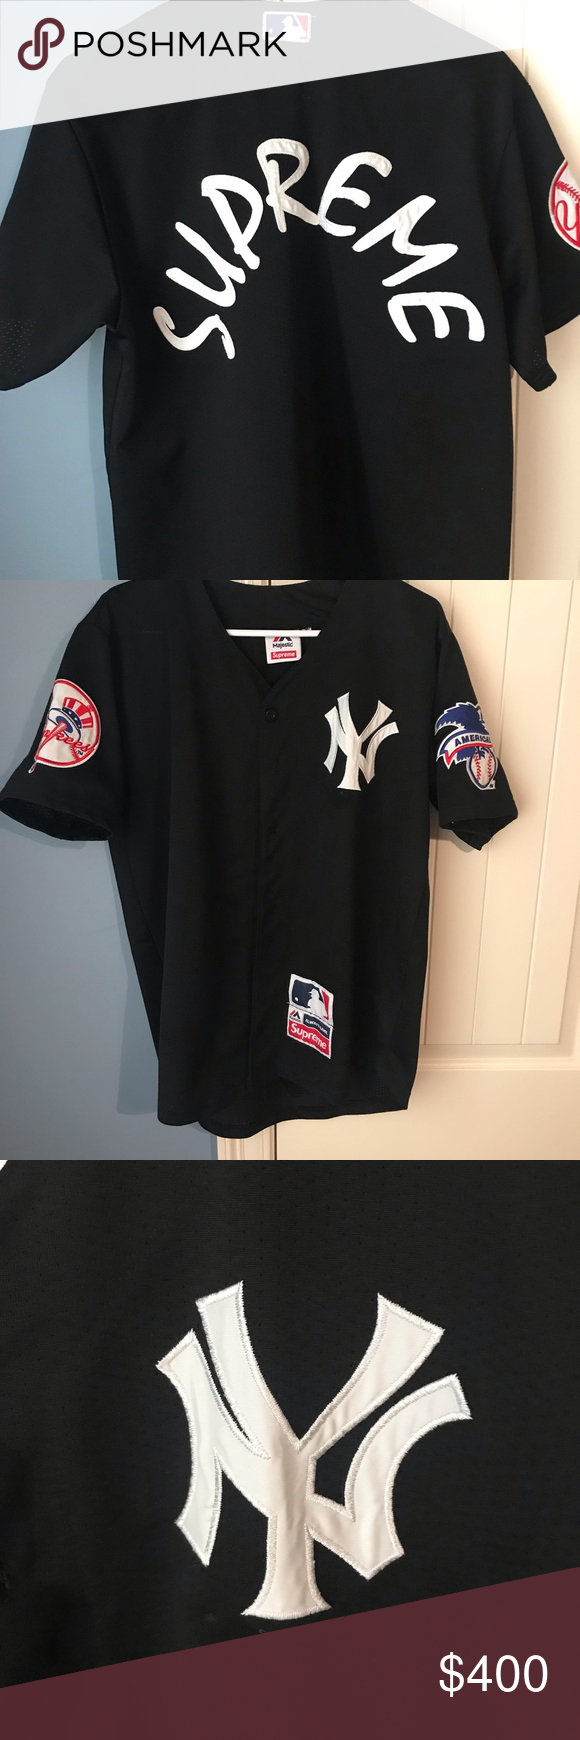 reputable site d5d3f 5a38c Supreme Yankees Jersey Large Awesome jersey. Little to no ...